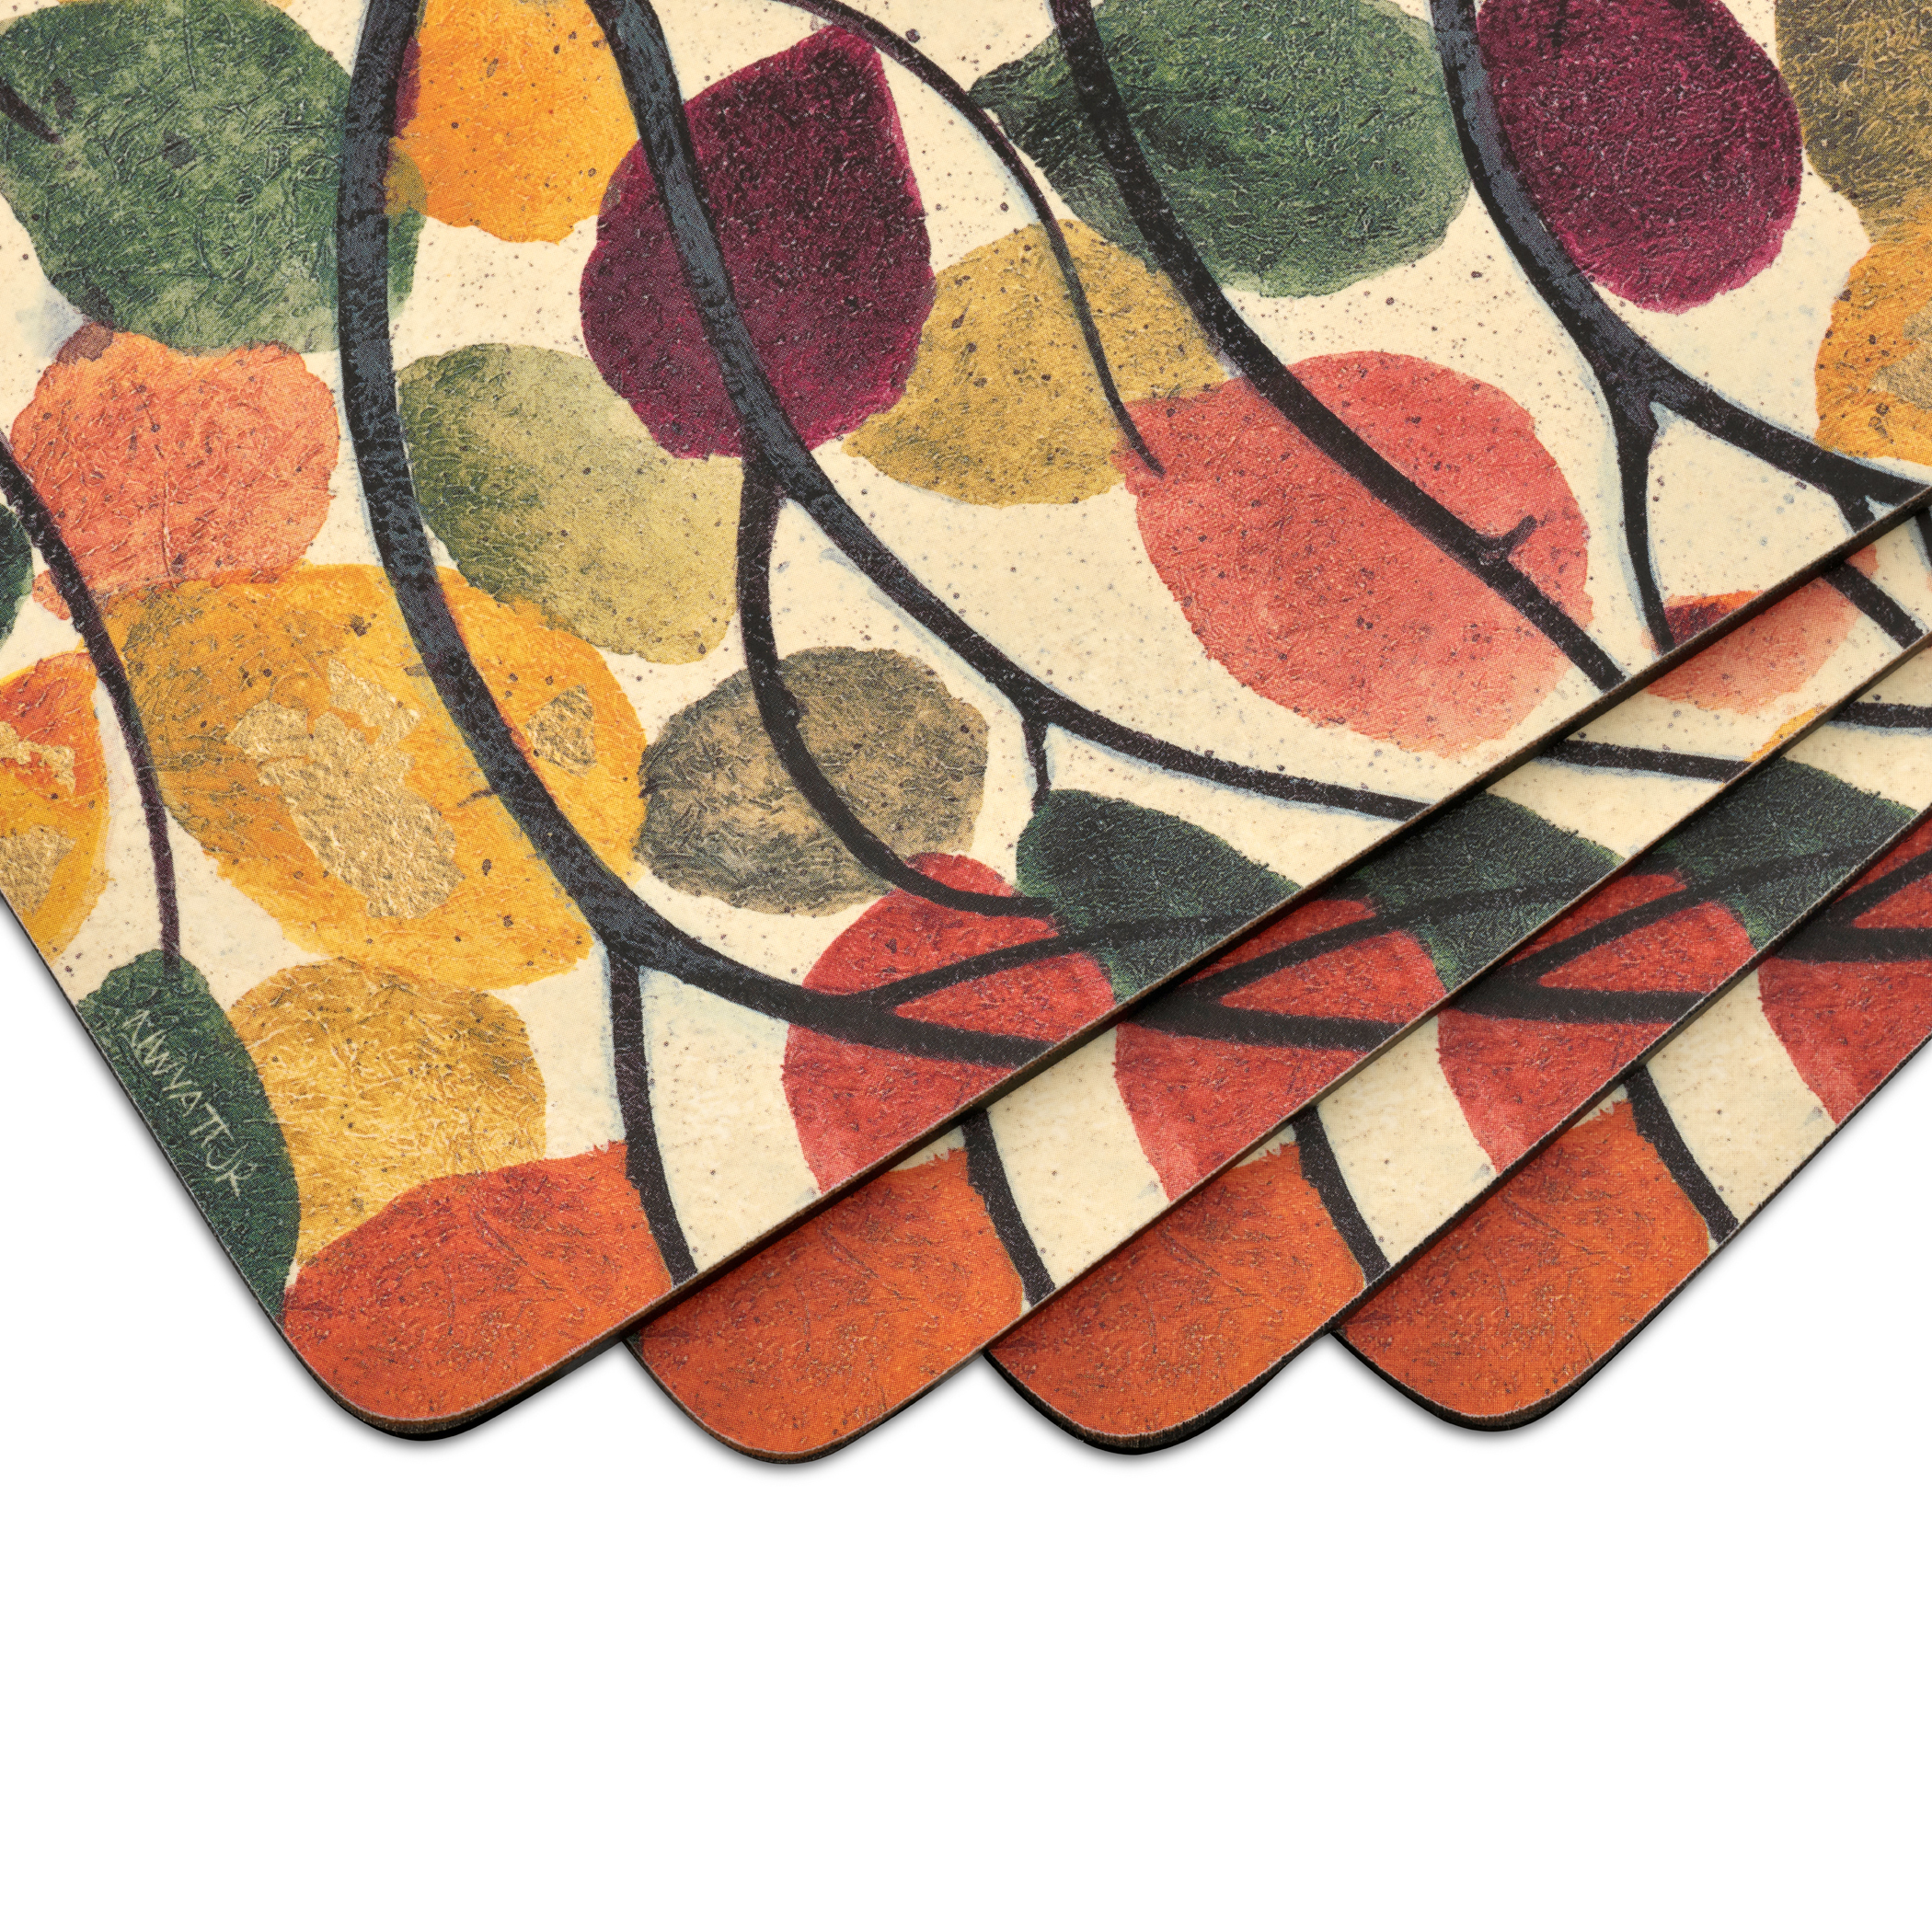 Pimpernel Dancing Branches Set of 4 Placemats image number 1